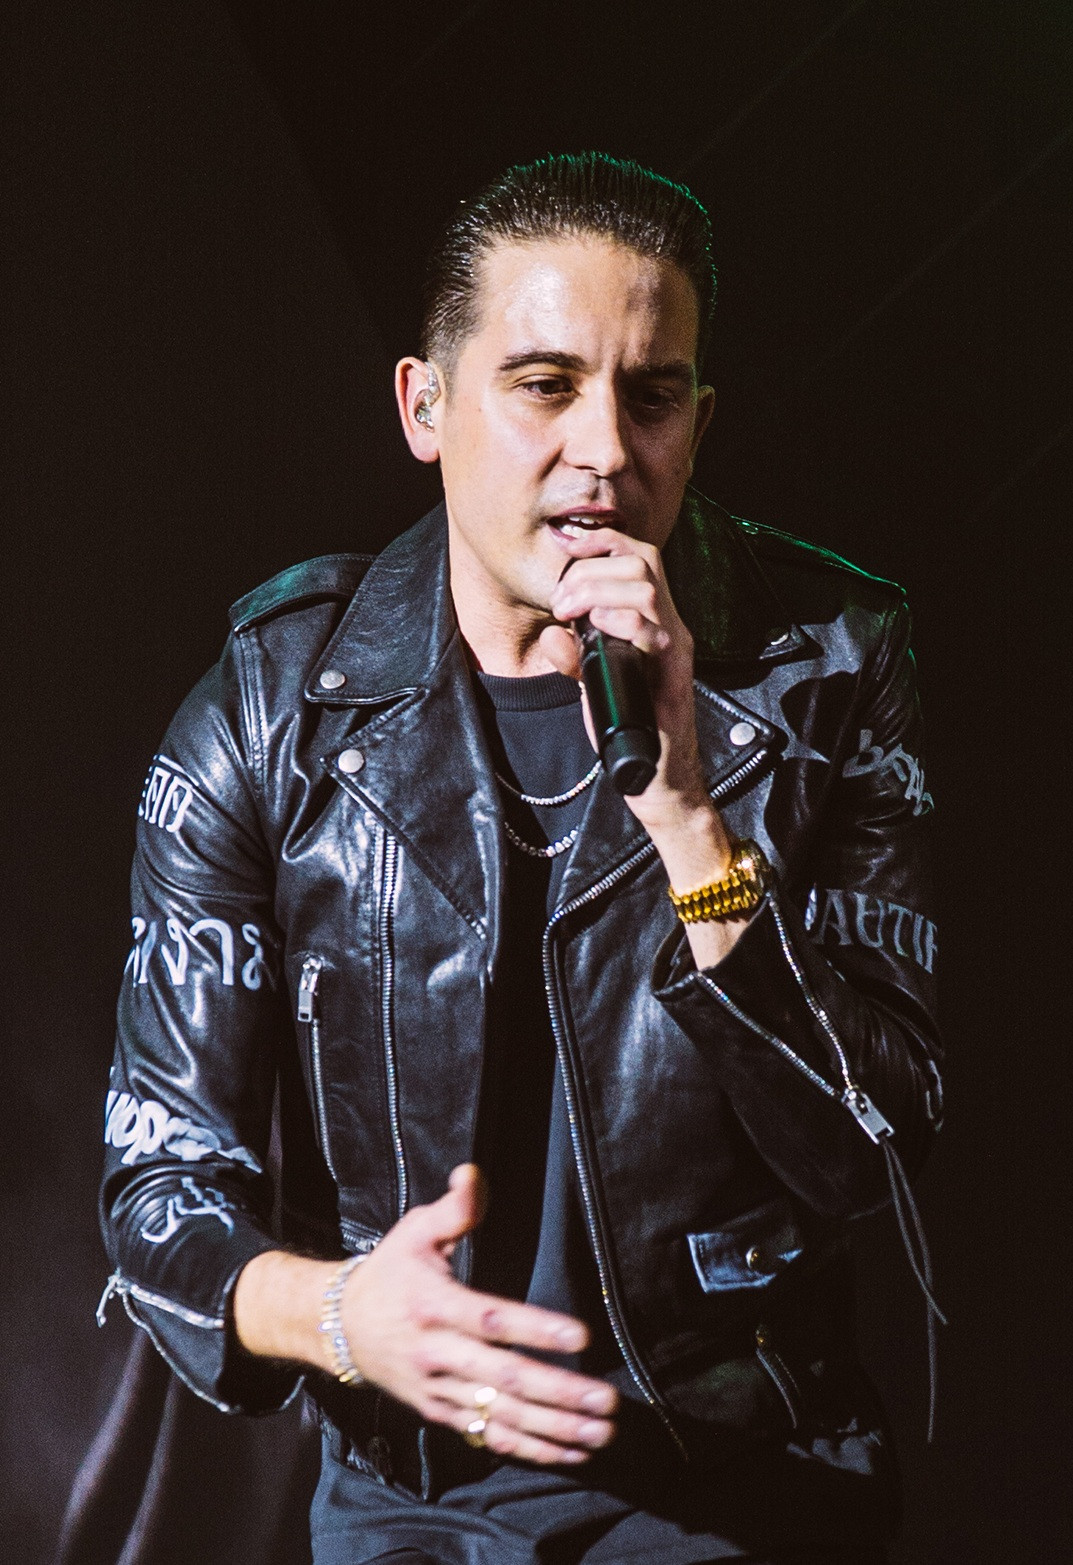 Rapper G-Eazy named as suspect on NYPD assault report